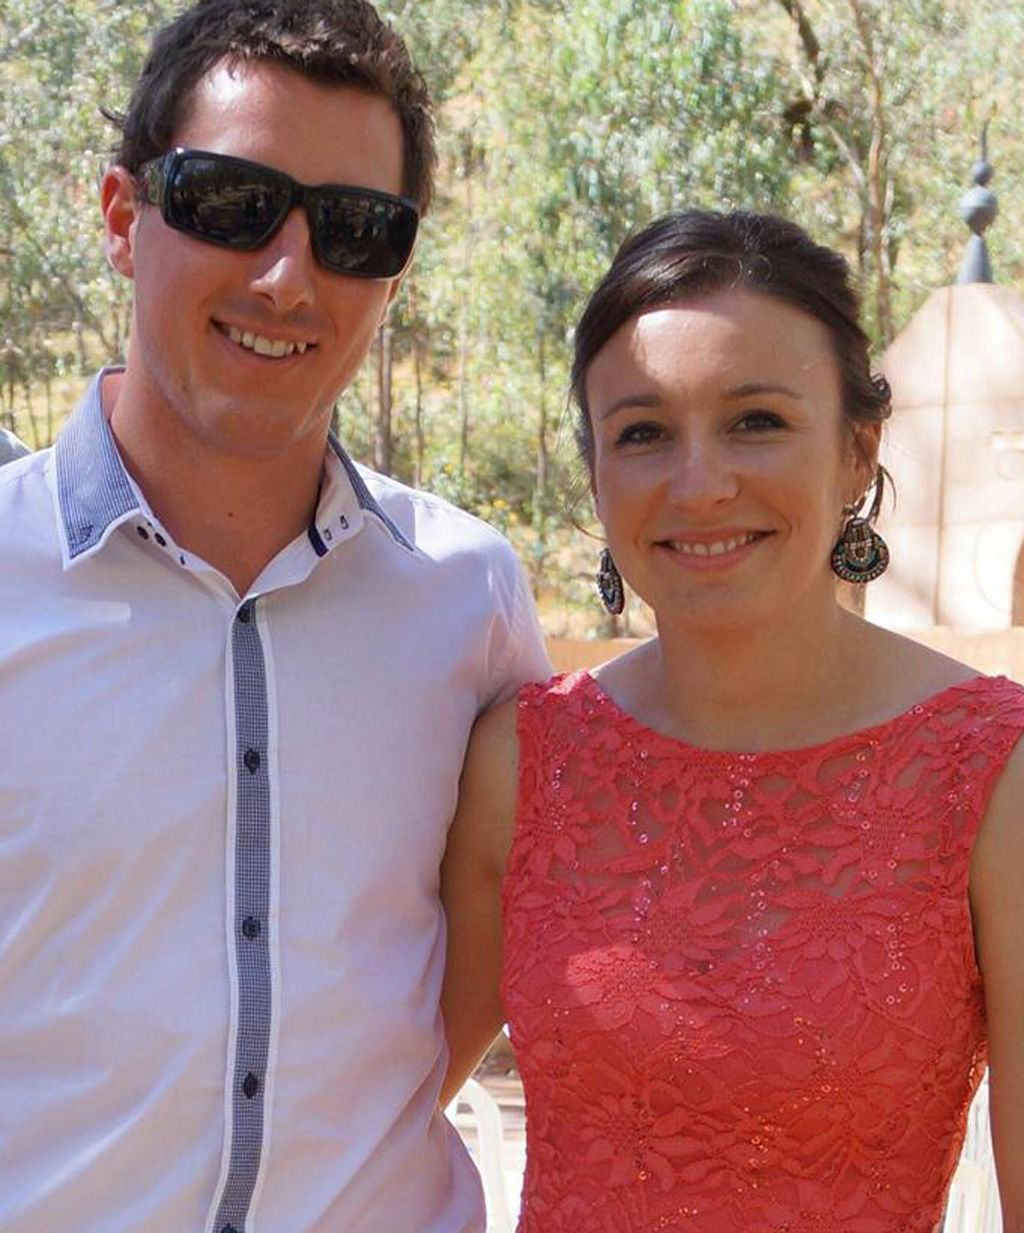 Stephanie Scott and her fiance Aaron Leeson-Woolley were due to be married six days after she was killed.